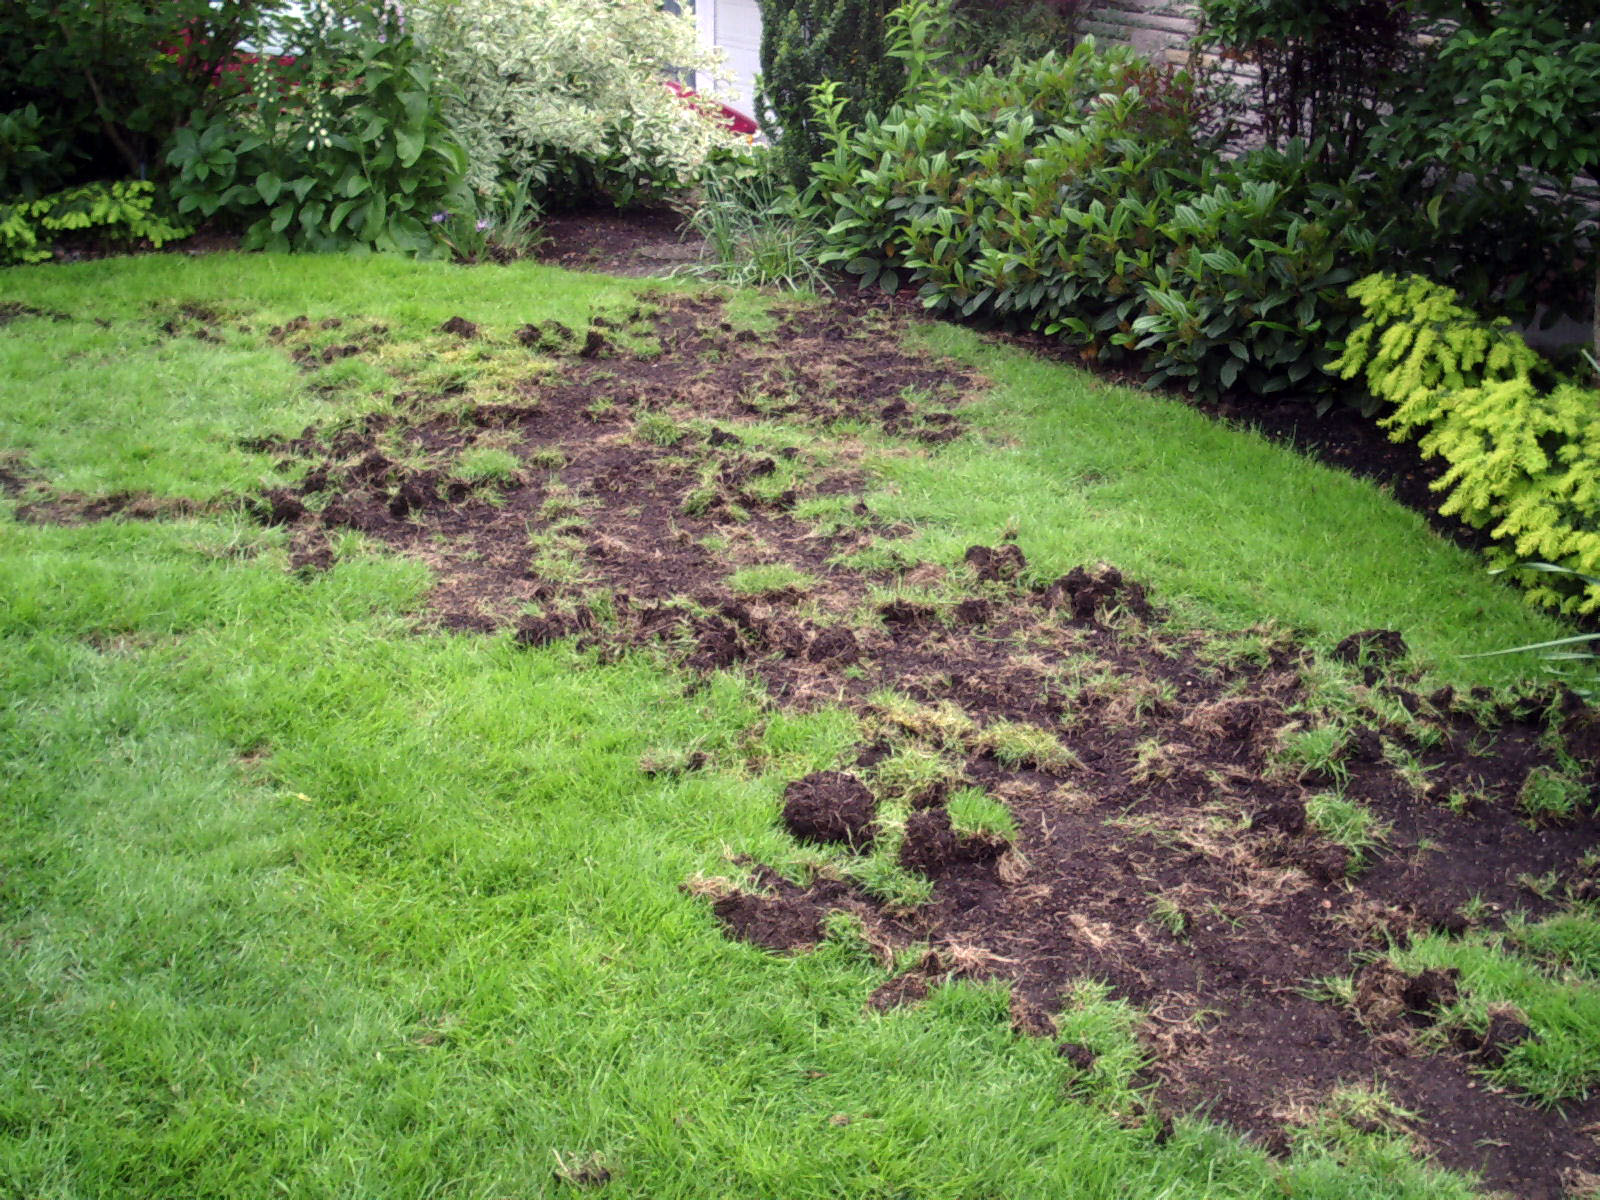 Racoon Lawn Damage